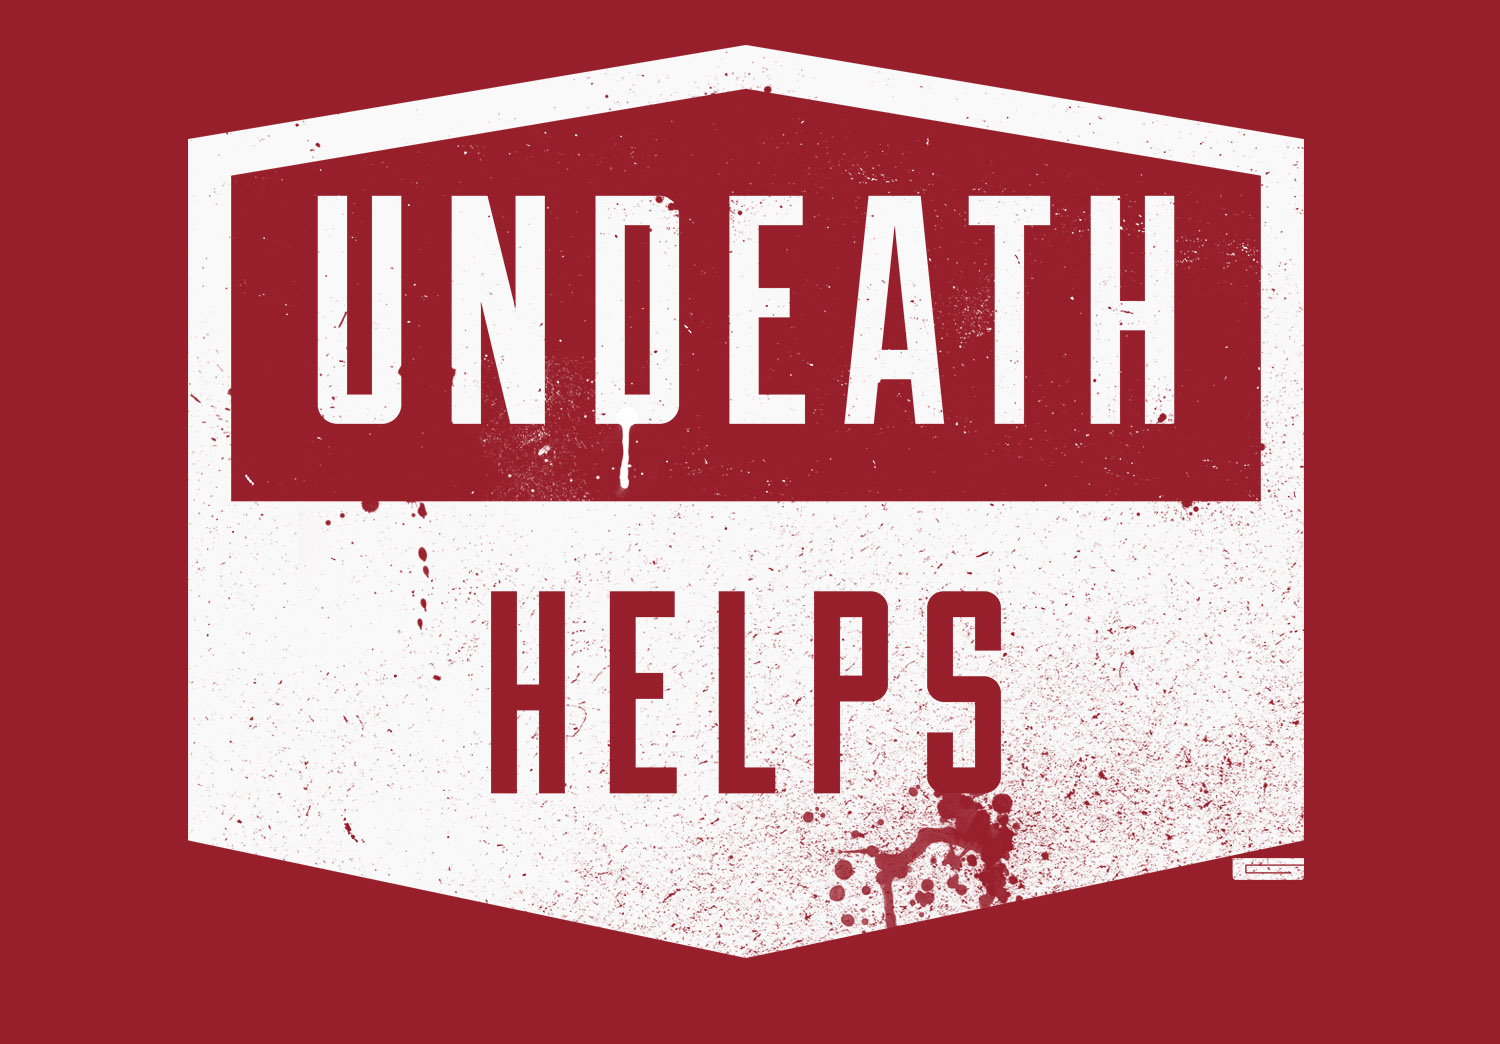 UNDEATH HELPS (light spattery)